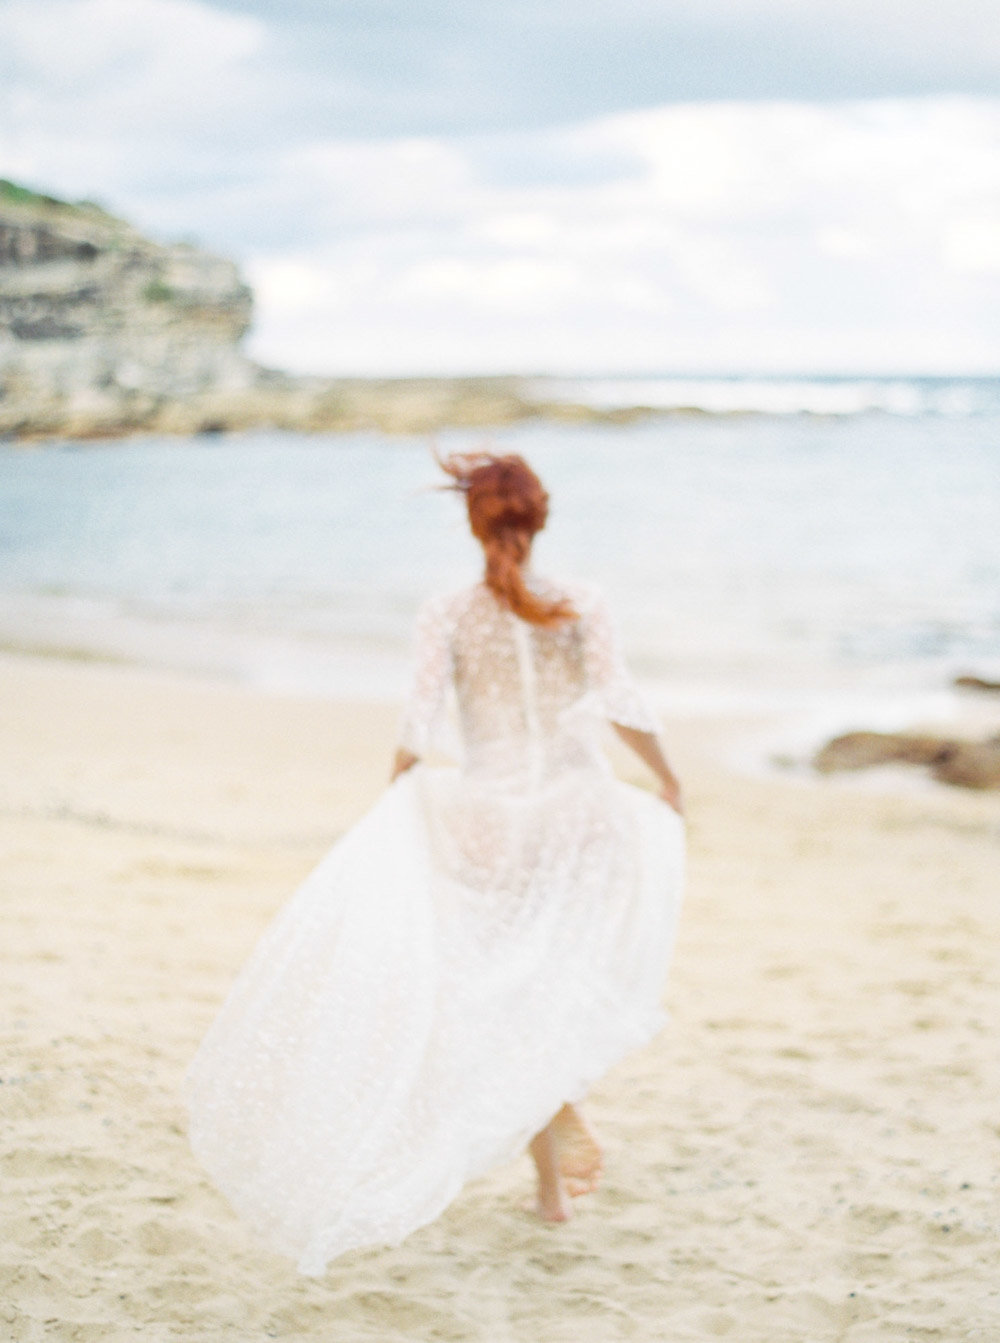 Sydney Fine Art Film Wedding Photographer Sheri McMahon - Sydney NSW Australia Beach Wedding Inspiration-00044